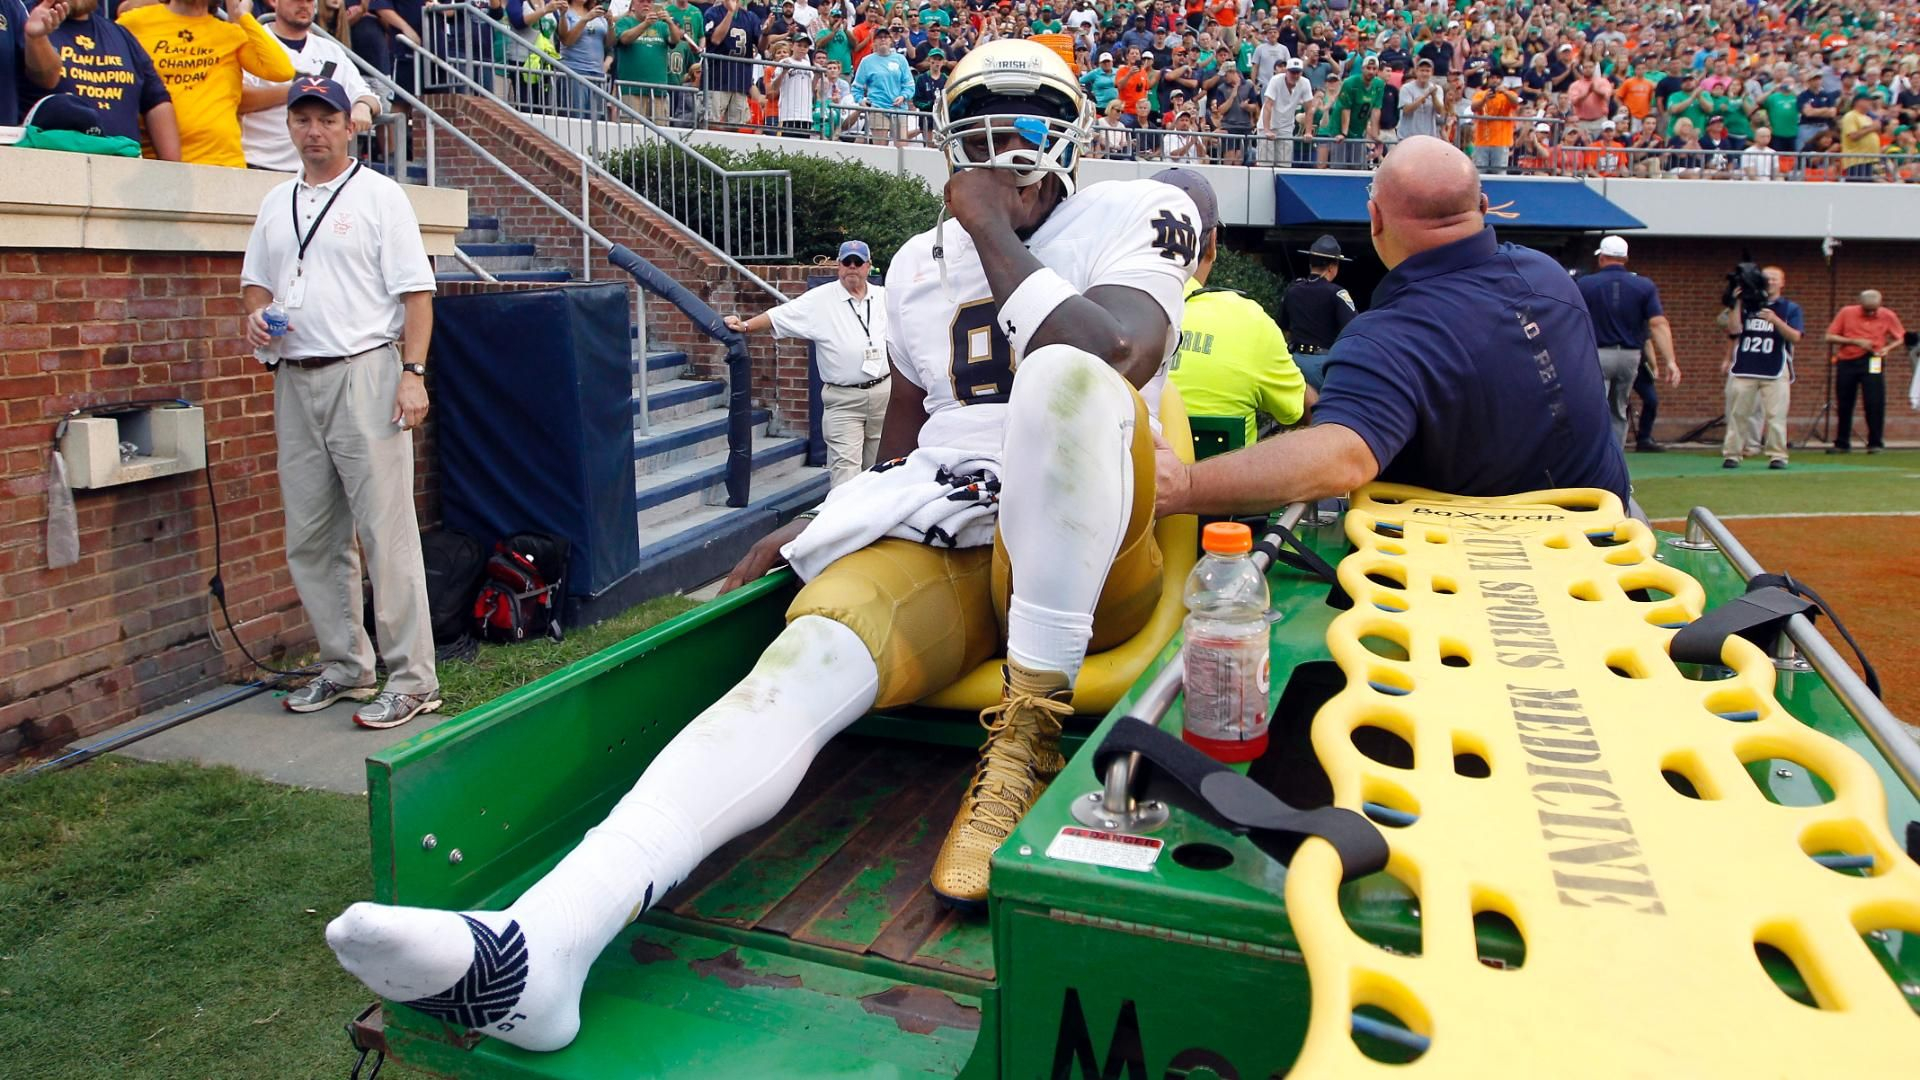 biggest college football player notre dame score live